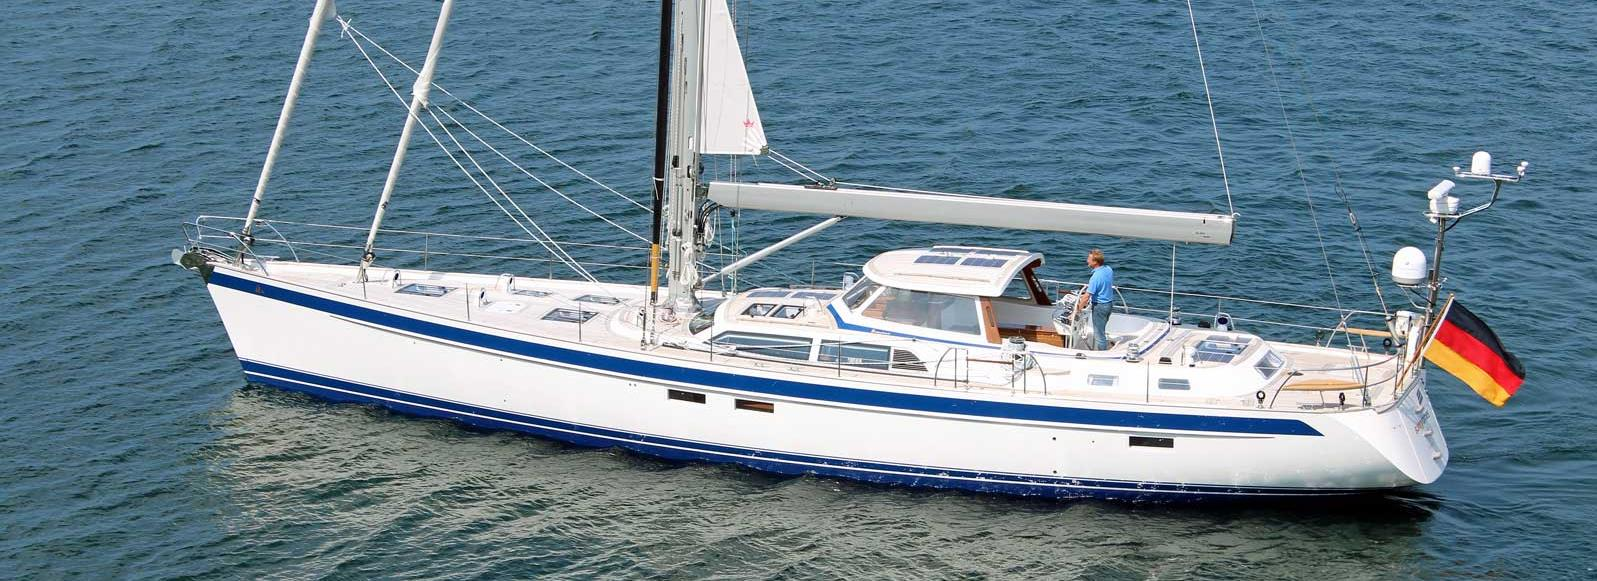 Pre-owned Hallberg-Rassy 64 for sale